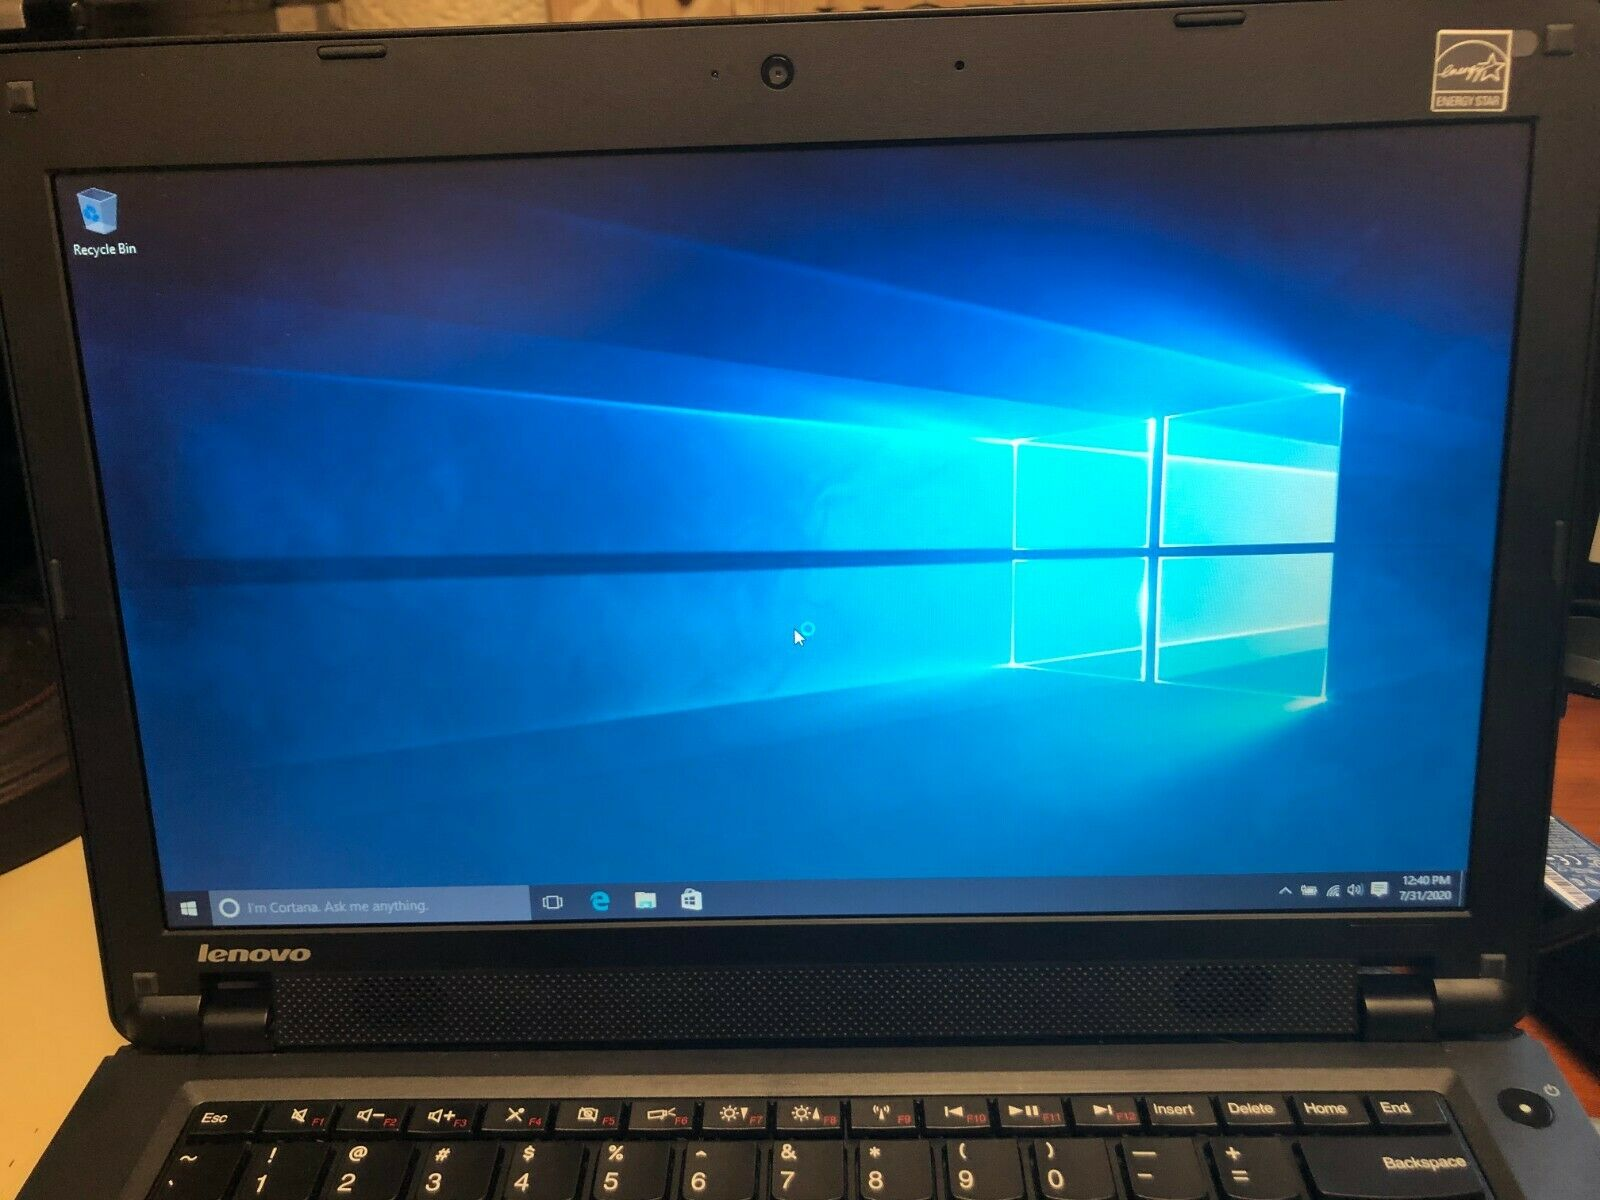 Laptop Windows - lenovo thinkpad laptop, Windows 10 professional, used